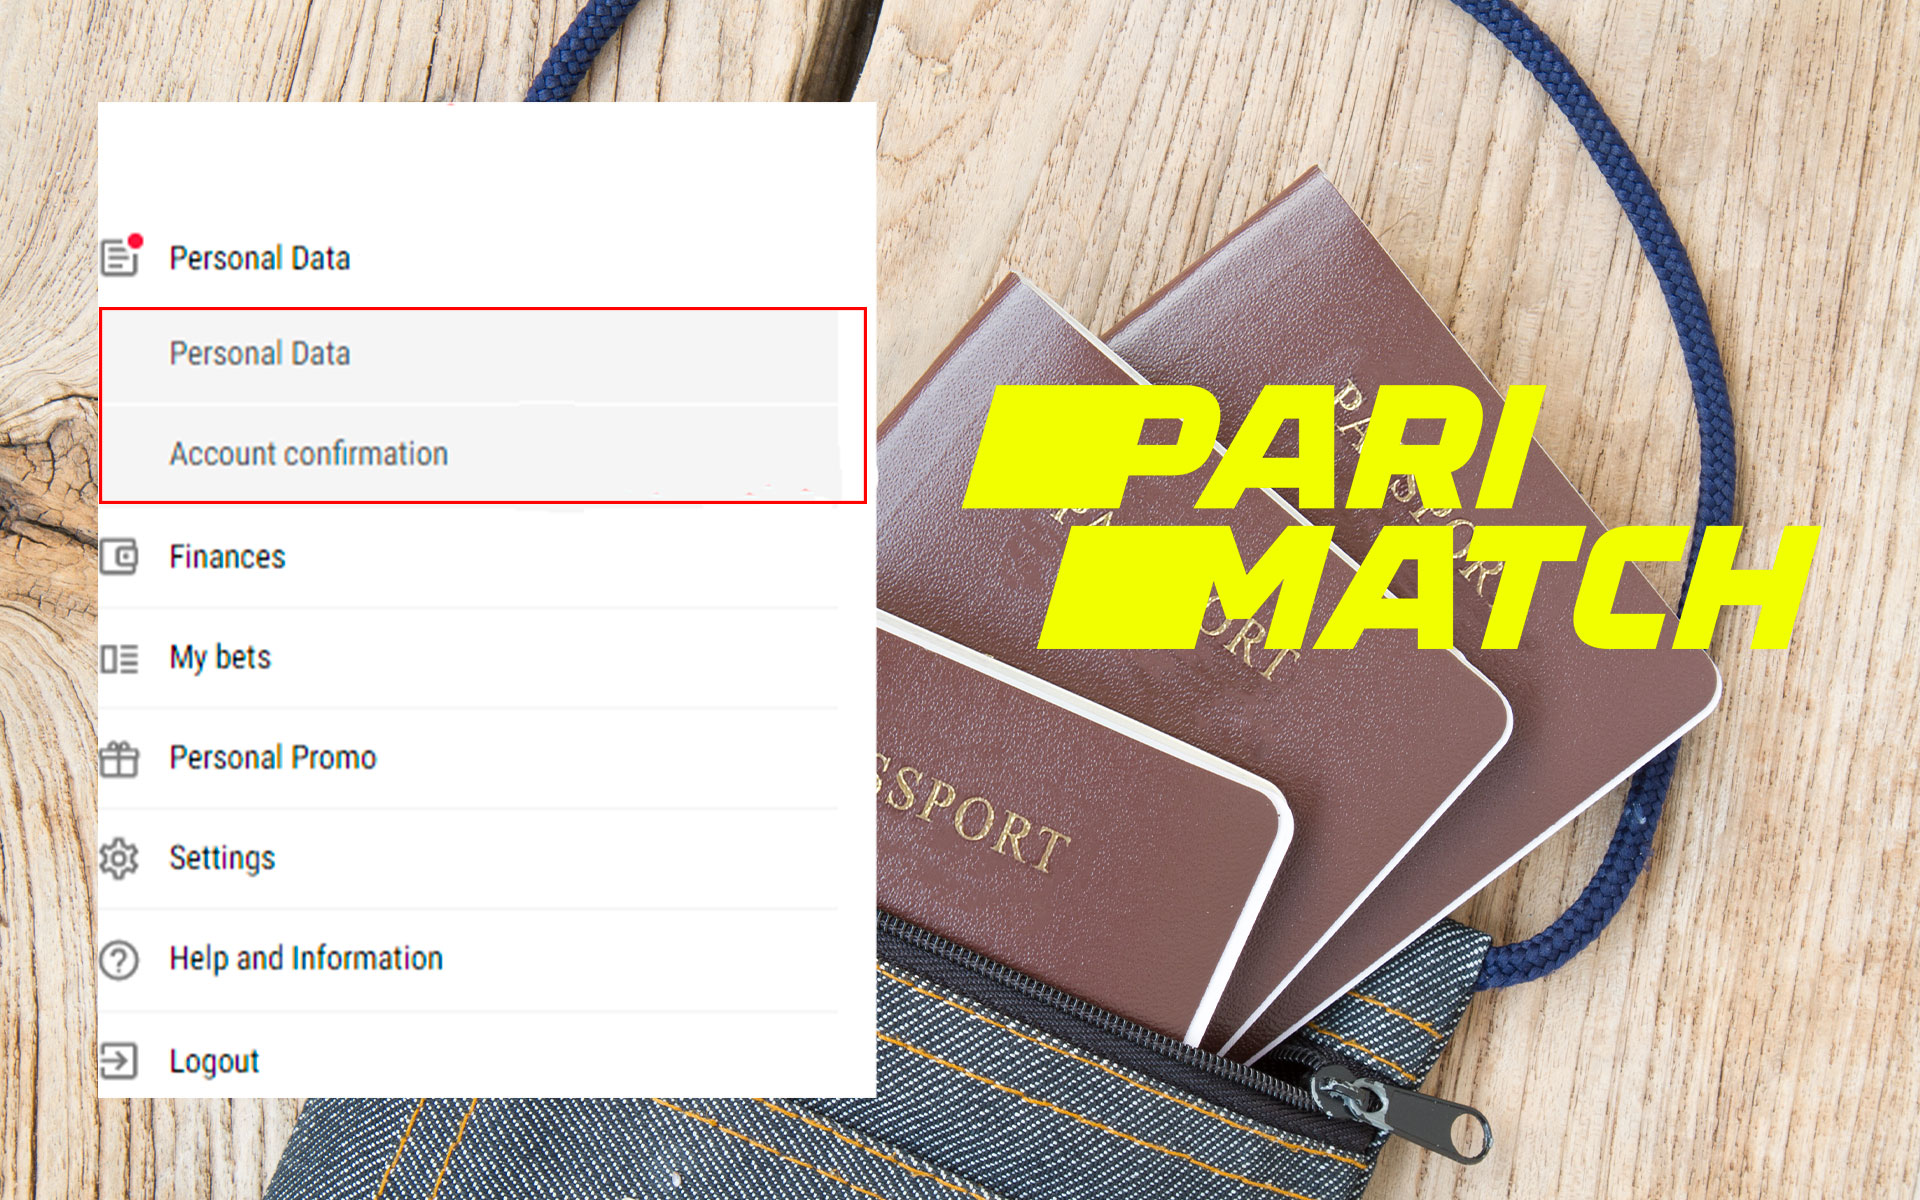 Only verified players can bet on money and withdraw winnings from Parimatch.